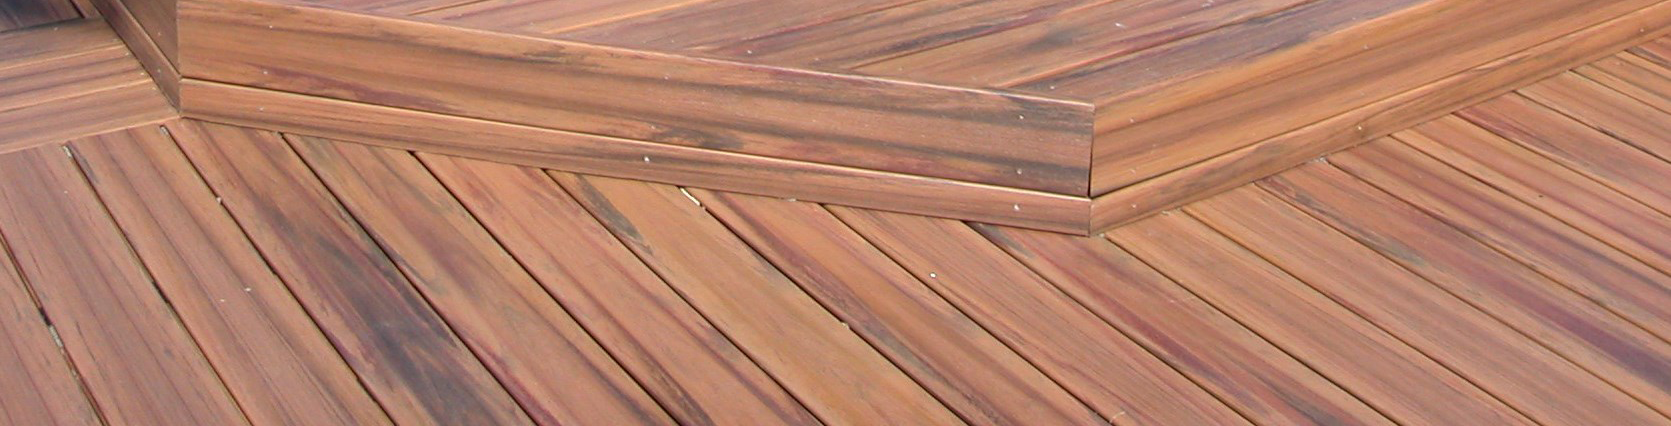 Campfire Armadillo Composite Decking from Sprenger Midwest